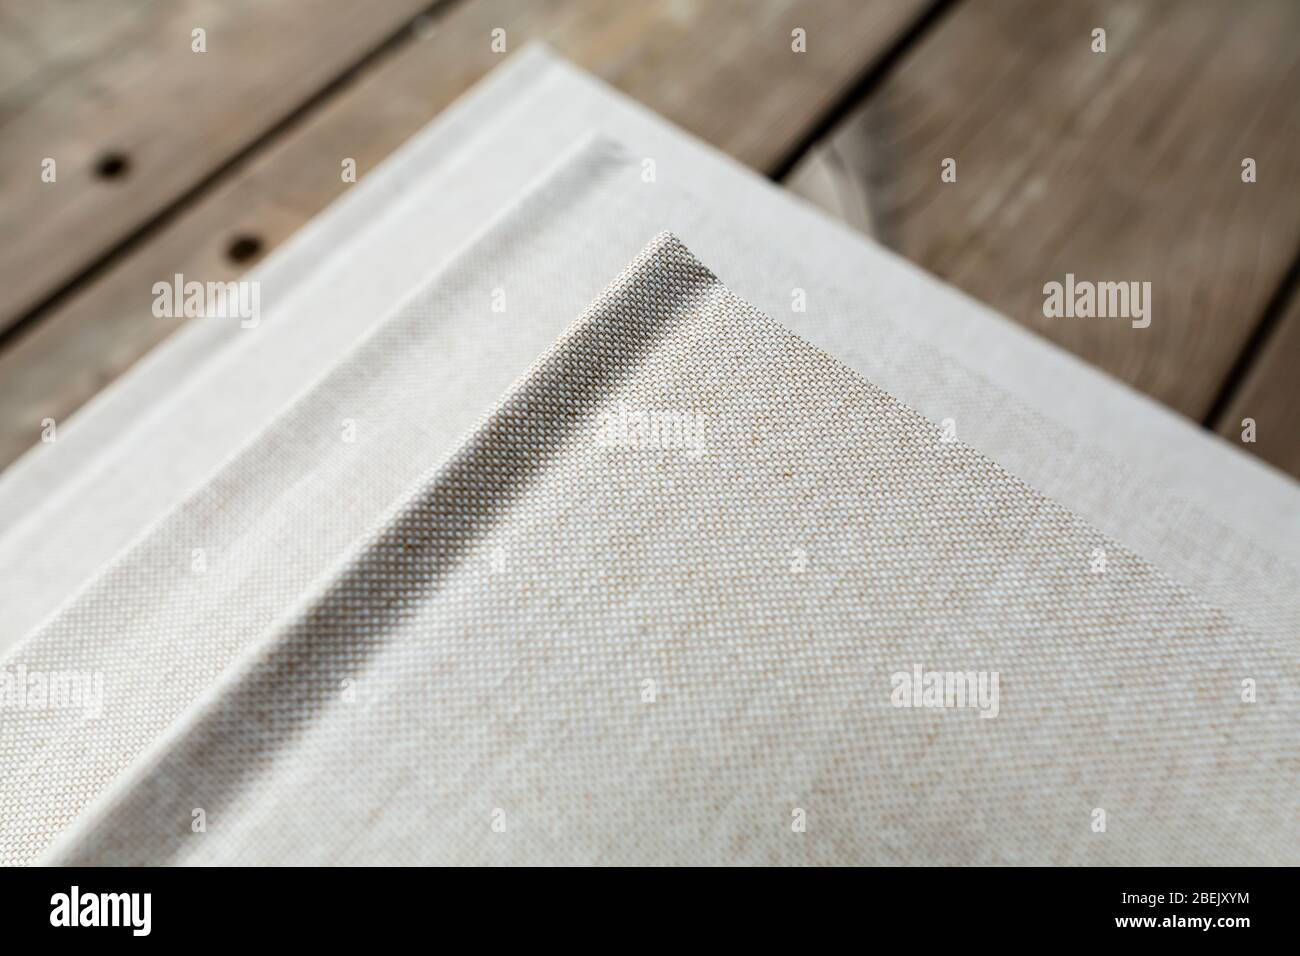 Wedding Albums On Beautiful Wood Background Cloth Cover Without Names Can Be Used As Design Element Set Of Albums Wedding Albums Books Stock Photo Alamy